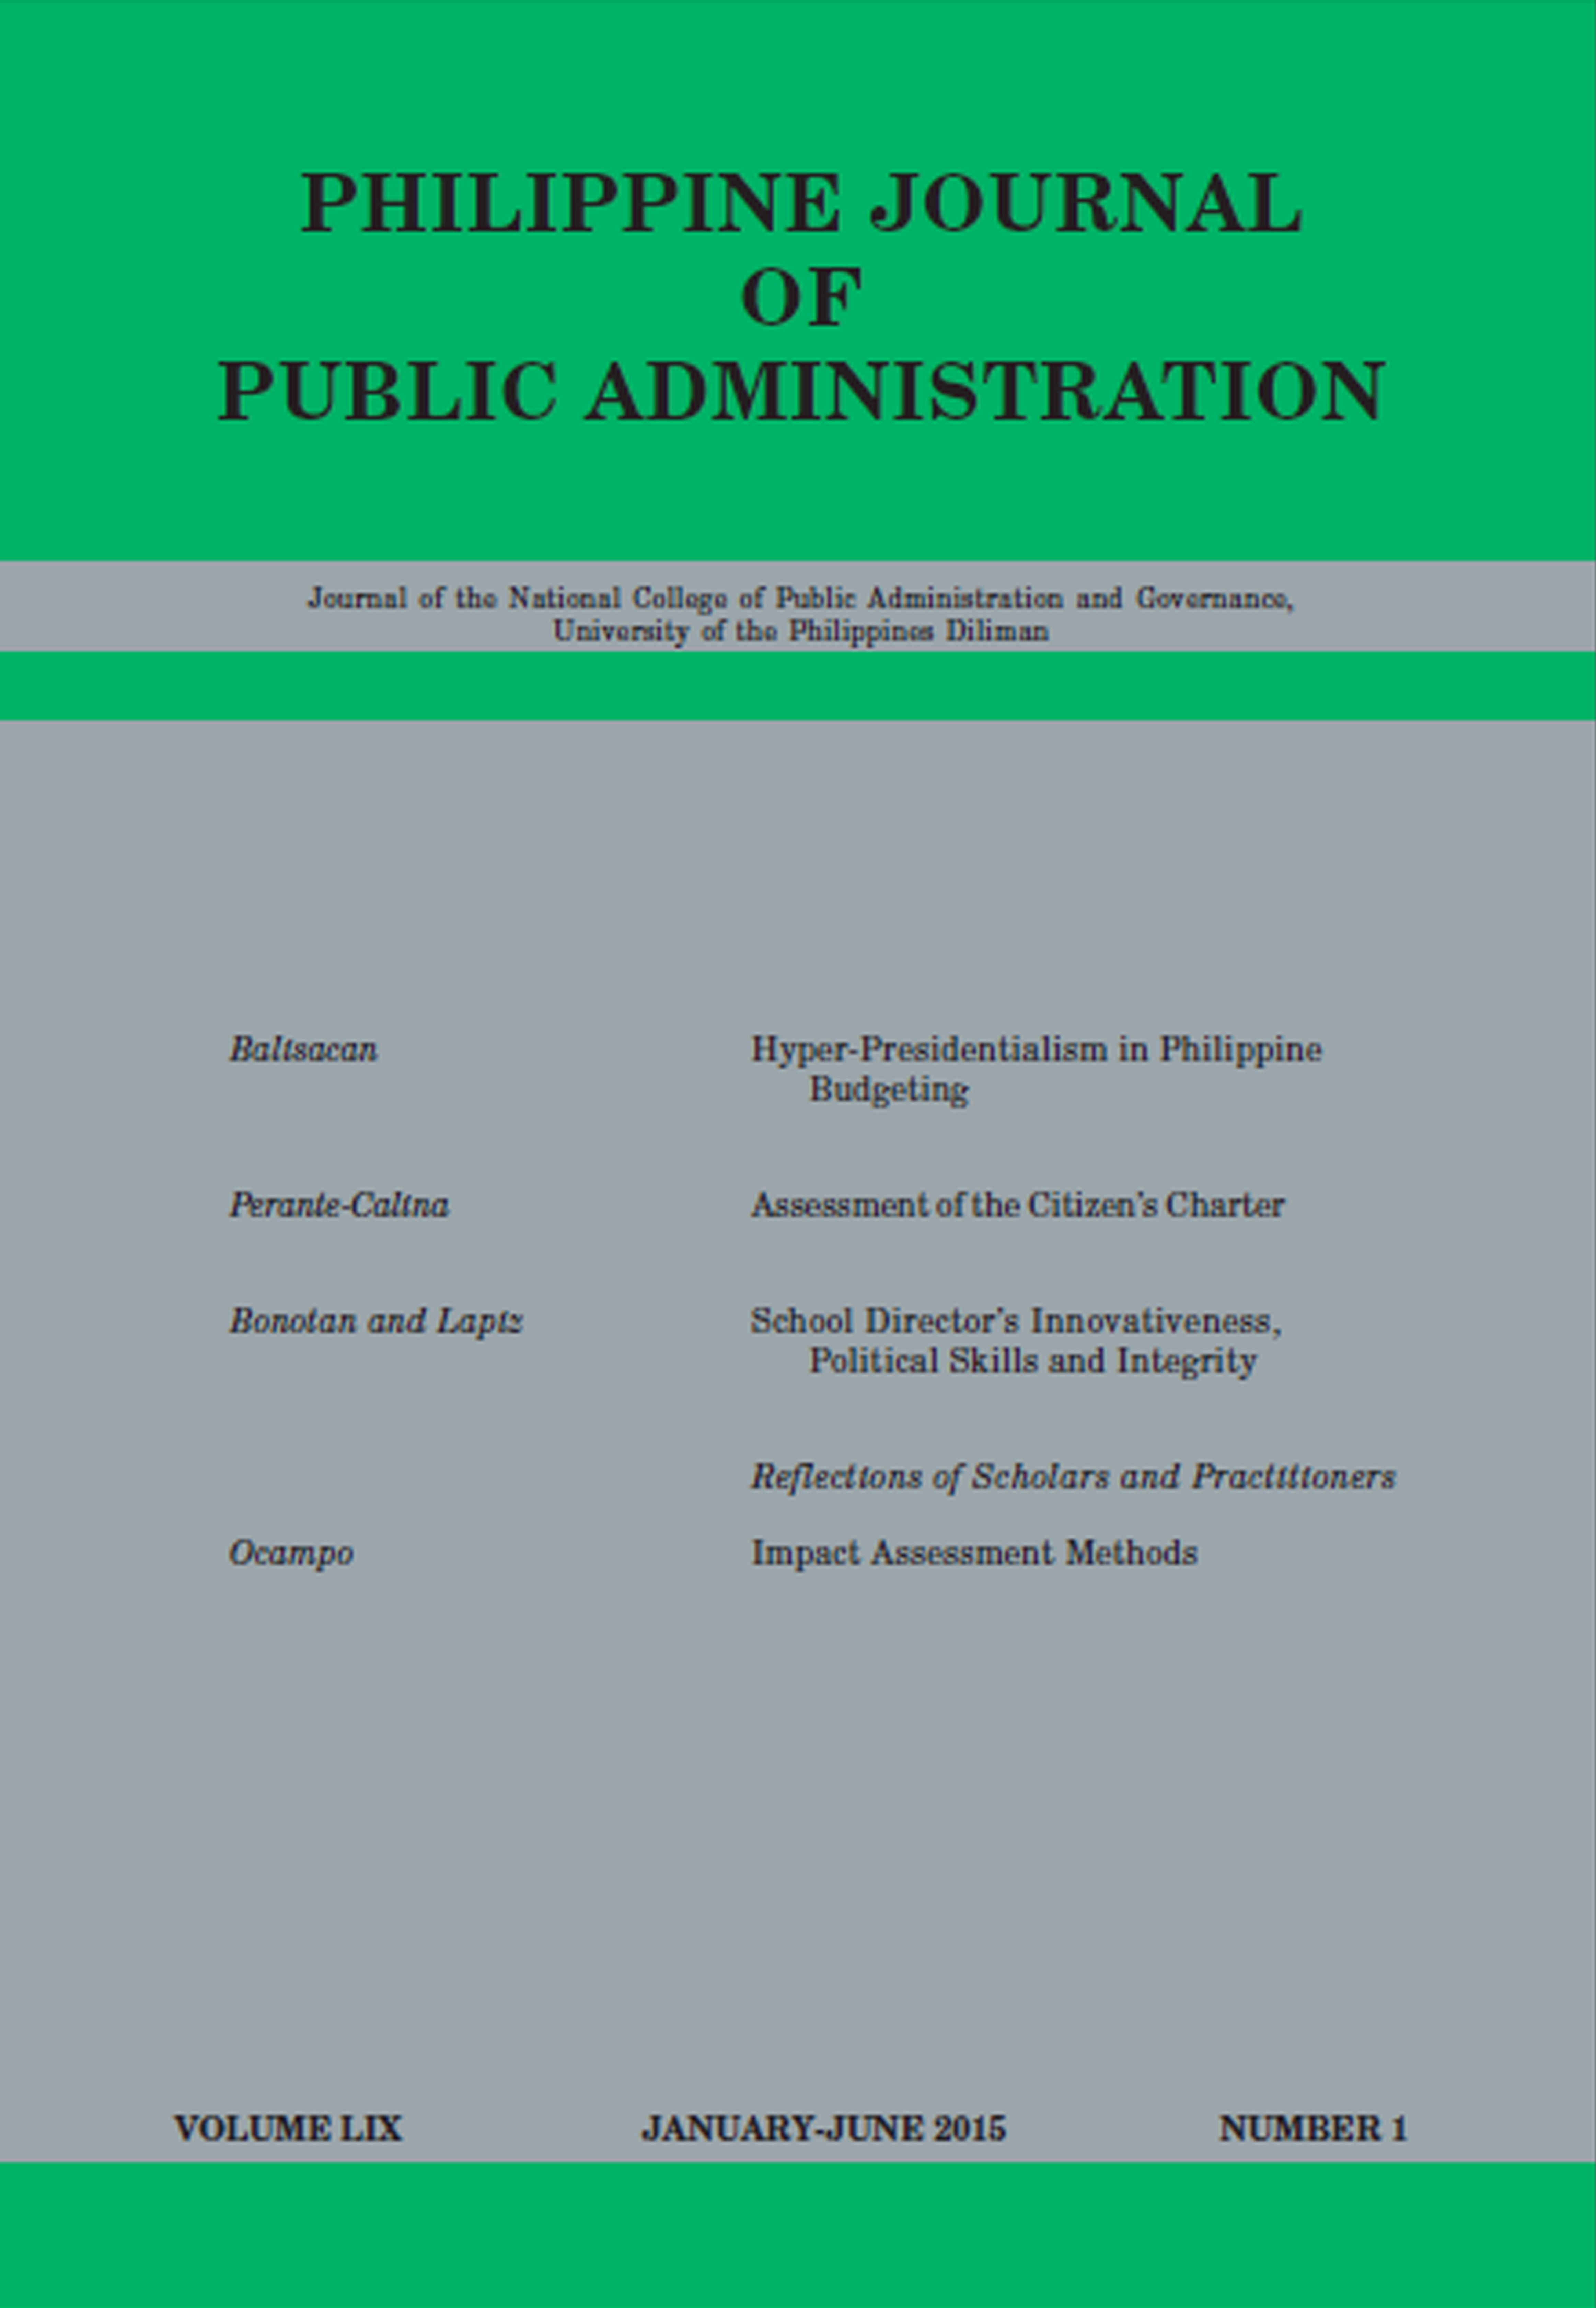 Phil. Journal of Public Administration Vol. 59, No. 1